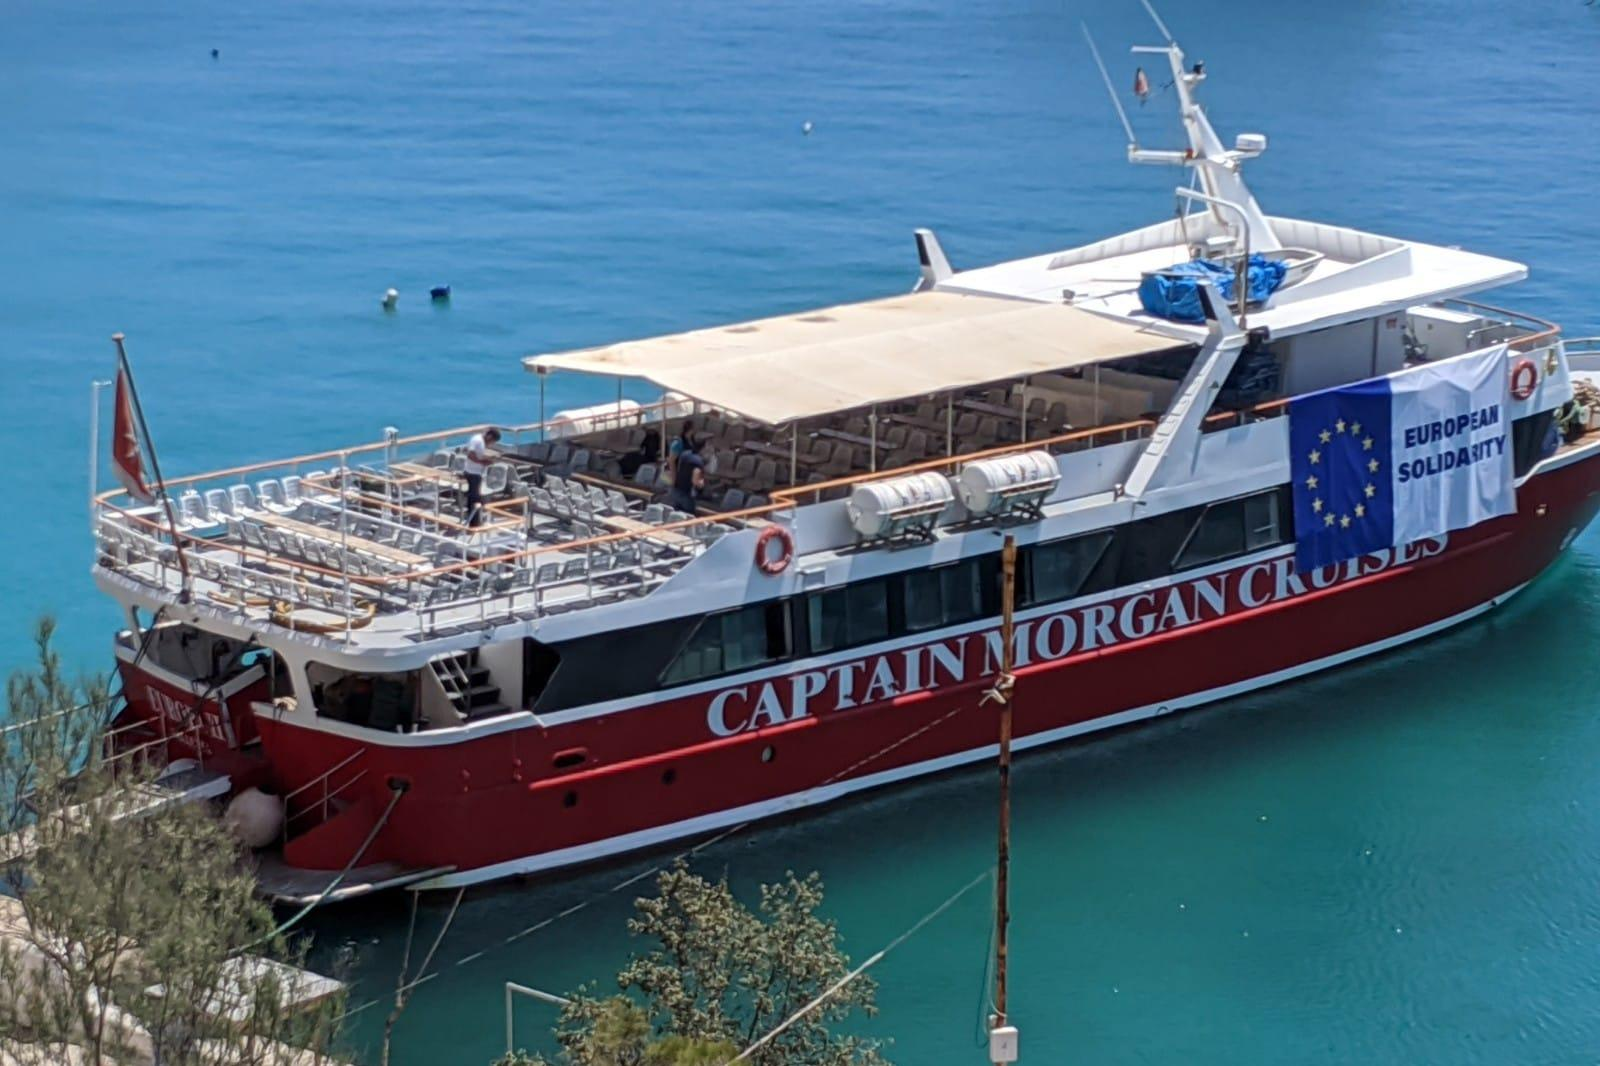 One of the Captain Morgan tourist boats that are housing migrants offshore. Photo: Jonathan Borg